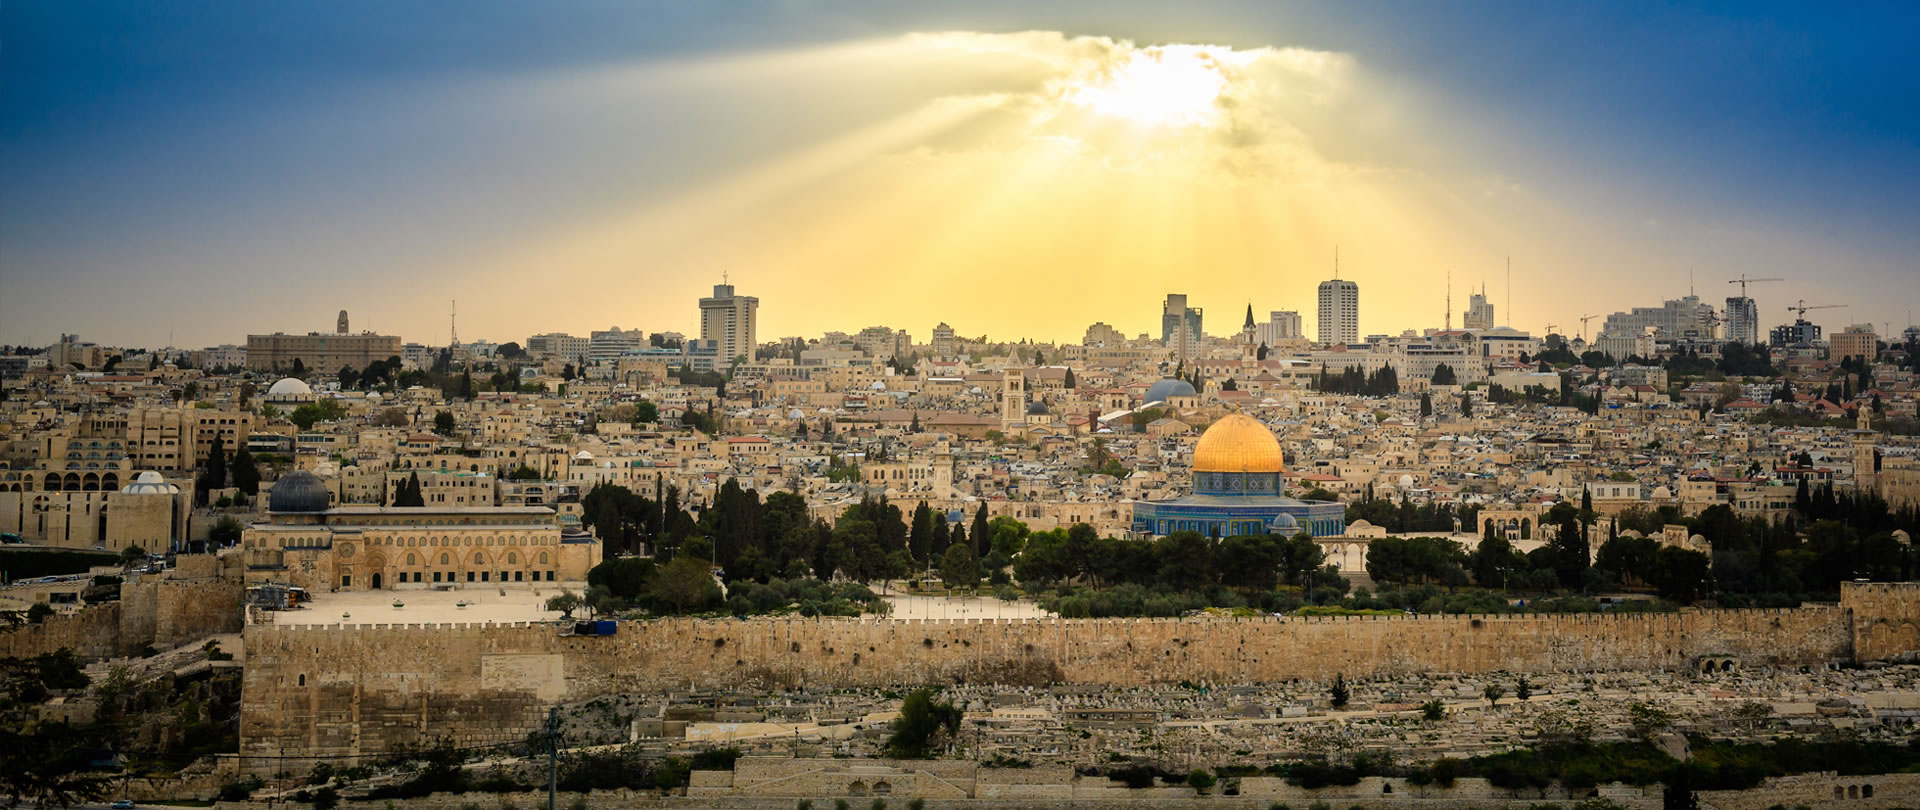 Israel Trip